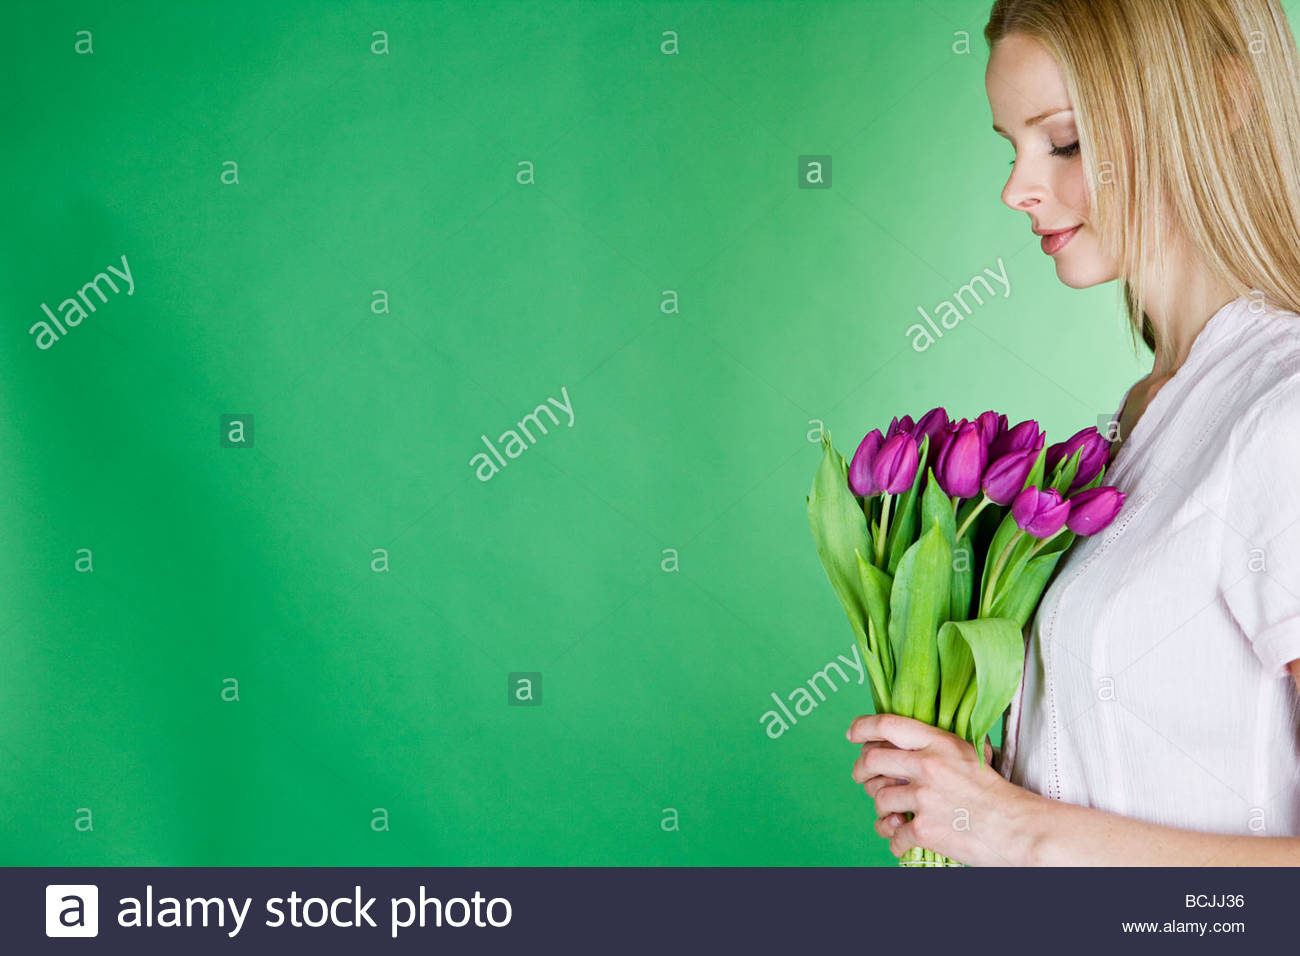 A young blonde woman holding a bunch of purple tulips, in profile - Stock Image